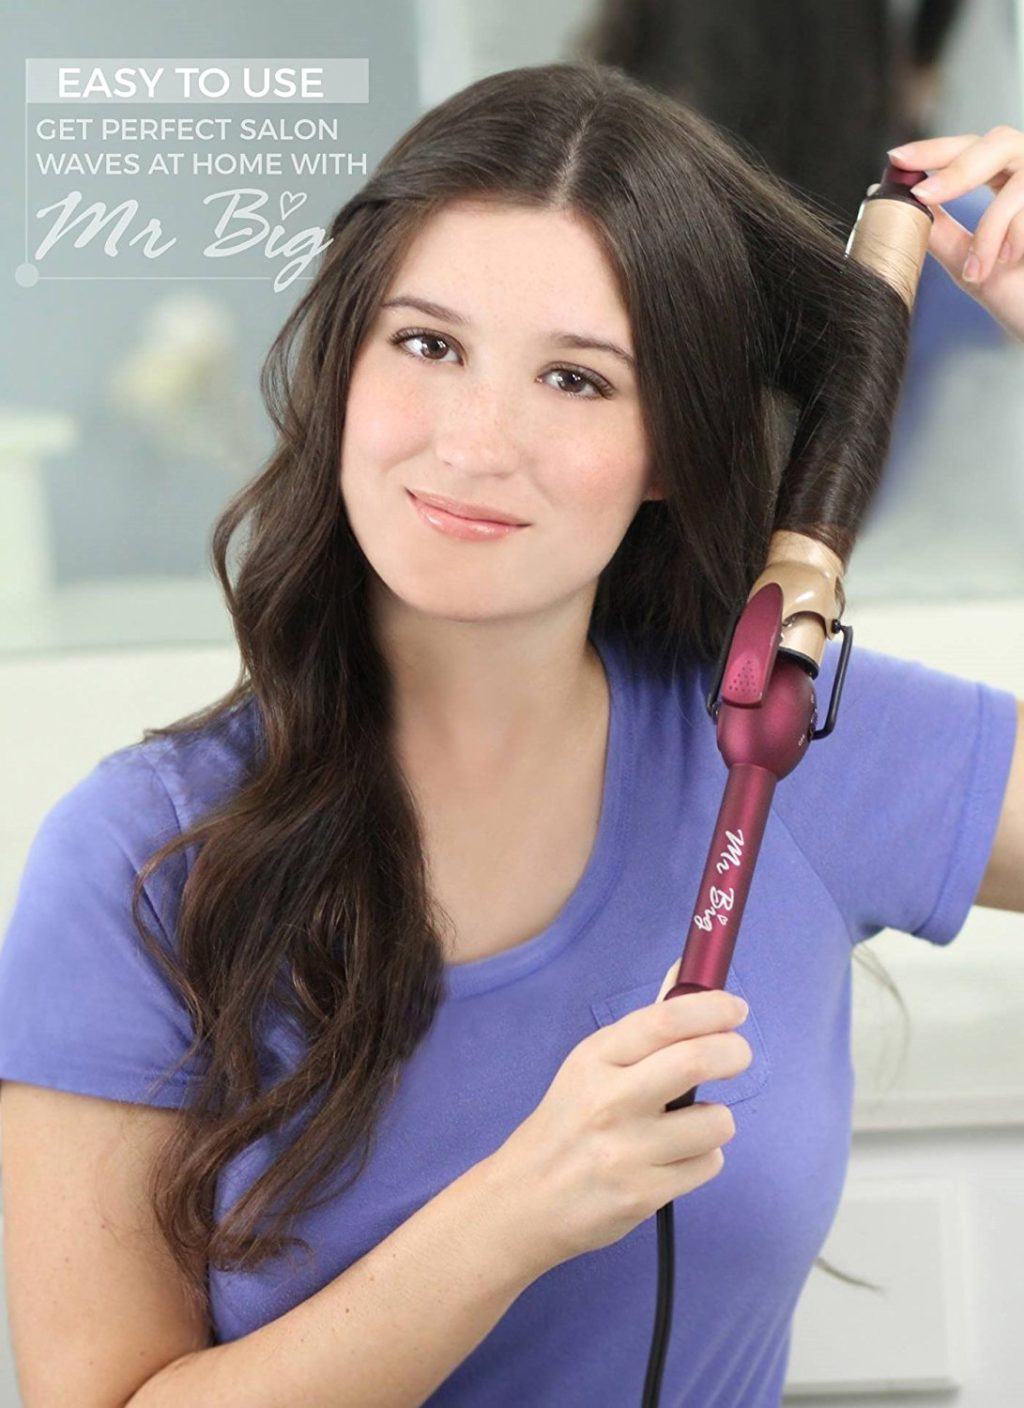 Mr Big Curling Iron Review